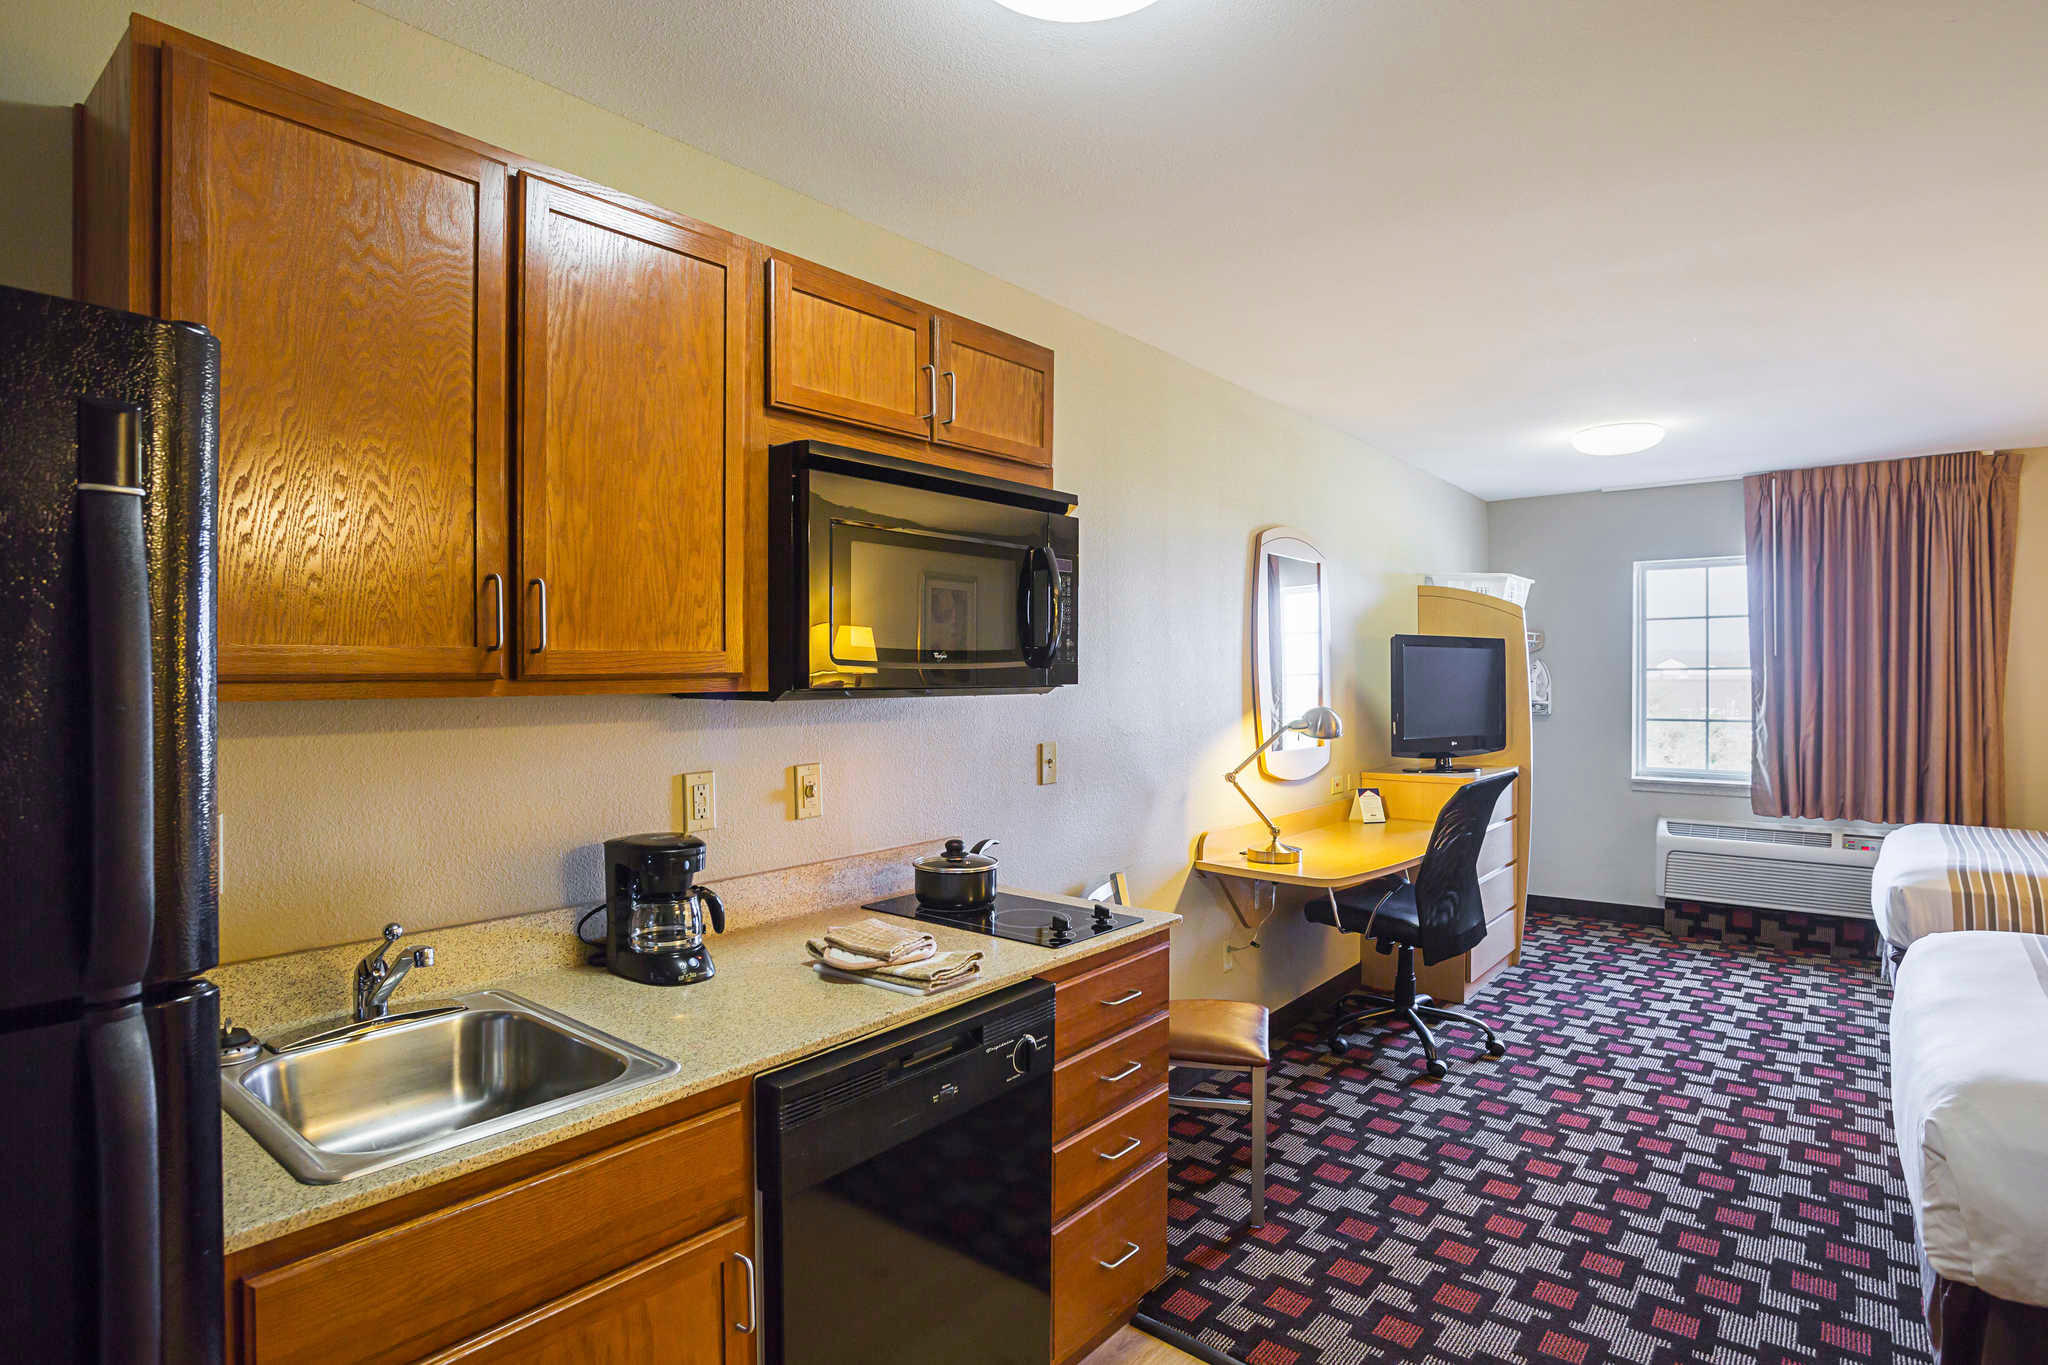 Suburban Extended Stay Hotel image 18